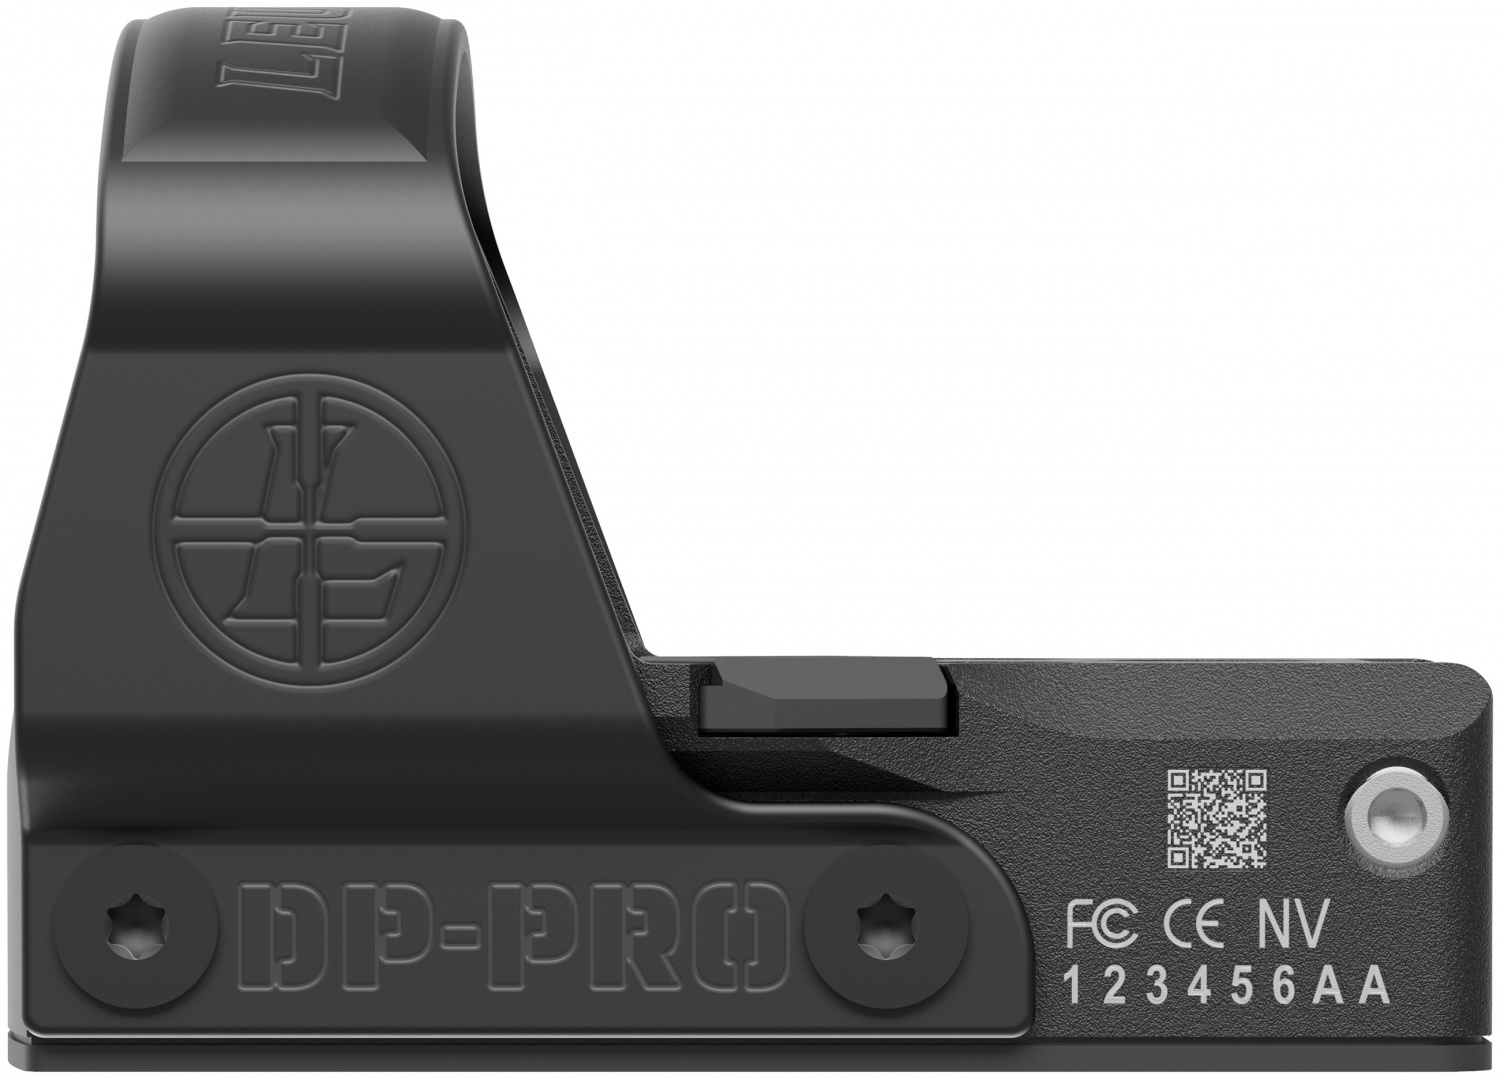 New Leopold Addition: Delta Point Pro Night Vision Ready